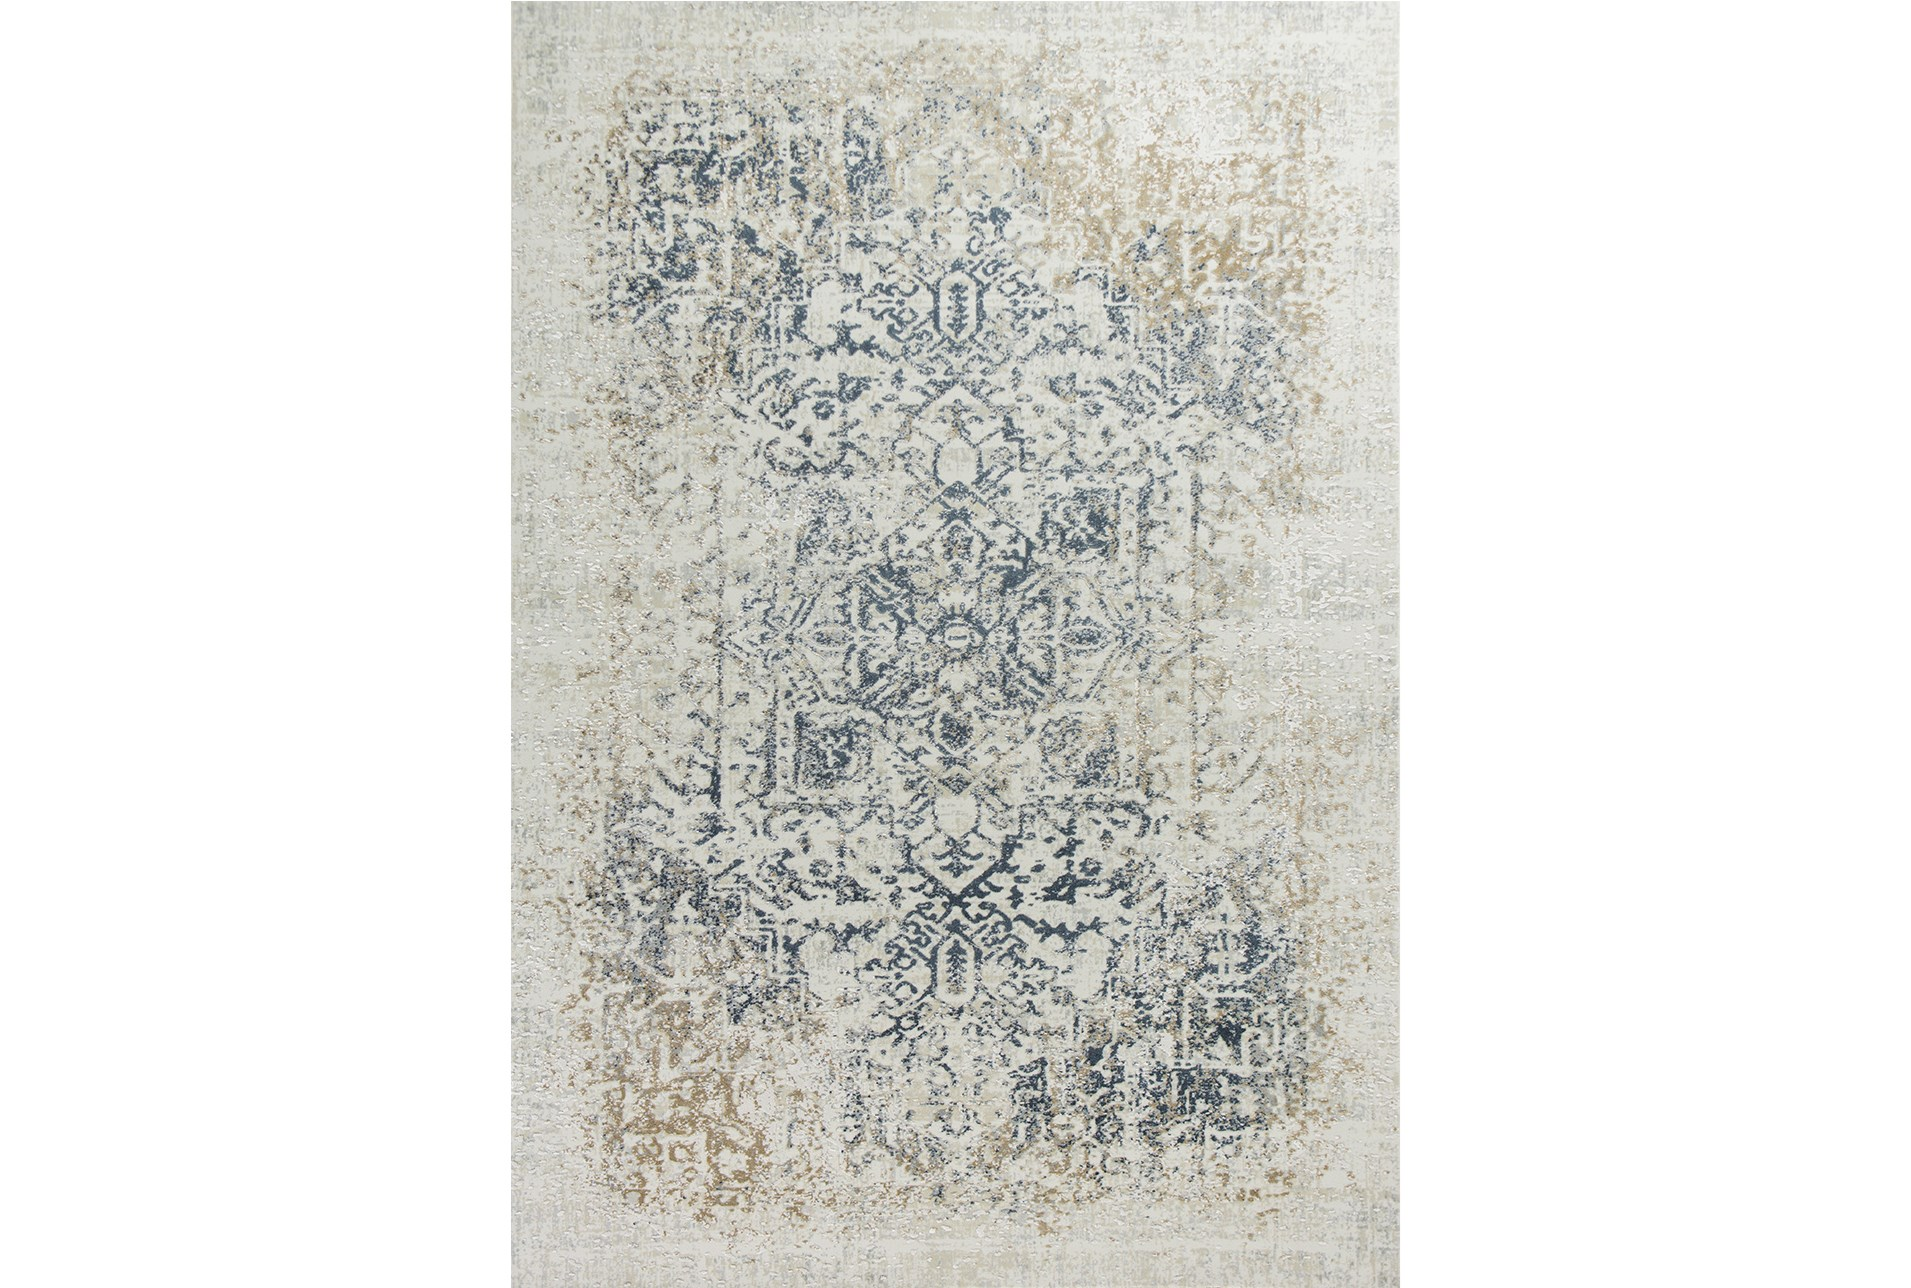 91x122 Rug Antique Graphite Living Spaces